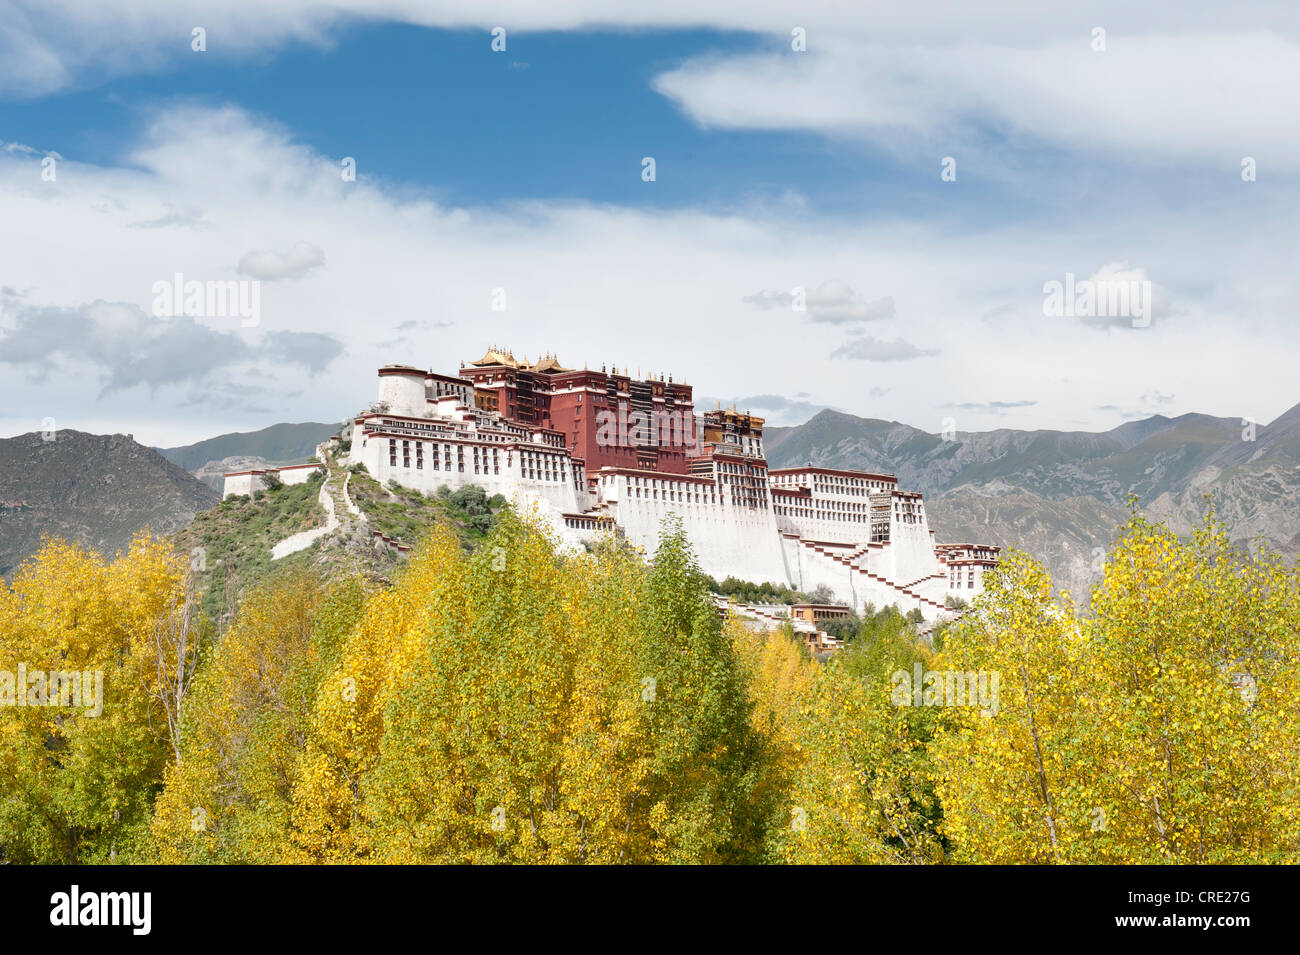 Tibetan Buddhism, Potala Palace, winter palace of the Dalai Llama, trees in yellow autumn foliage, Lhasa, Himalayas, - Stock Image